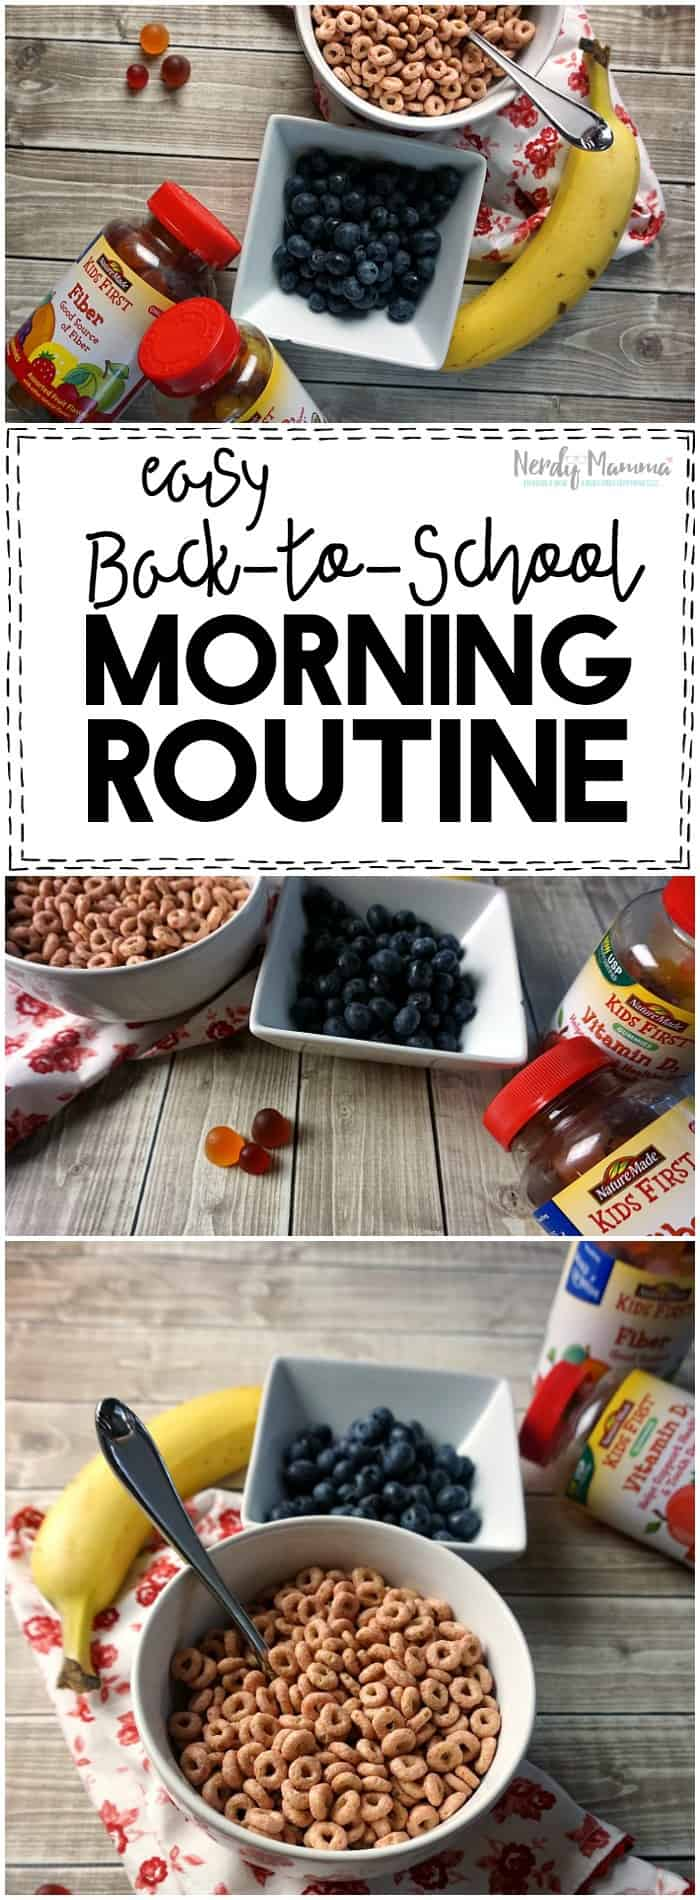 I love this free printable back to school morning routine! So simple--but super helpful for the kids!